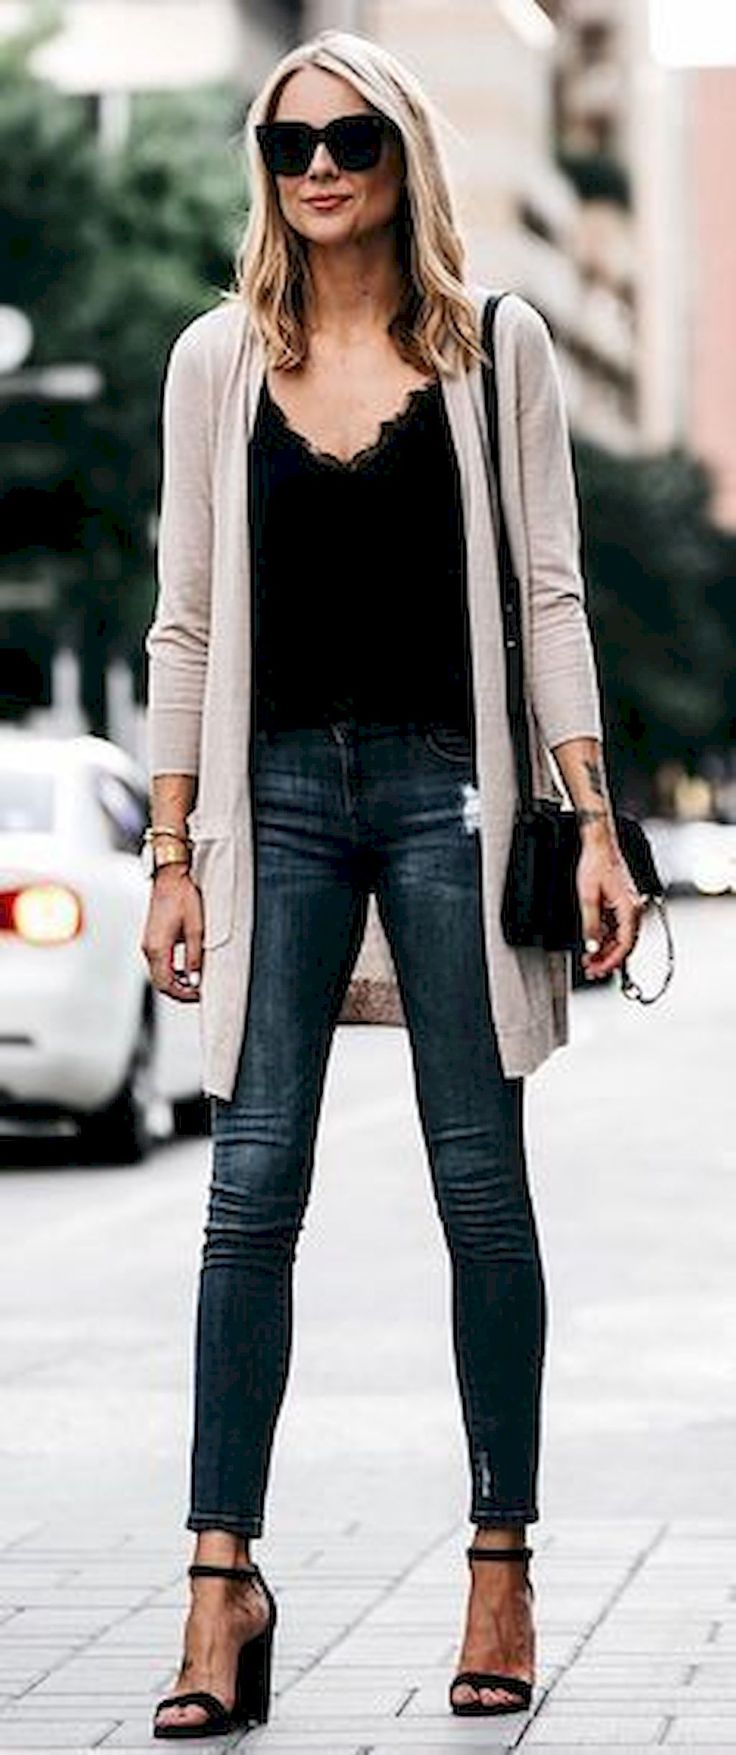 Awesome 28 Trending Fall Outfits Ideas to Get Inspire bellestilo.com/…